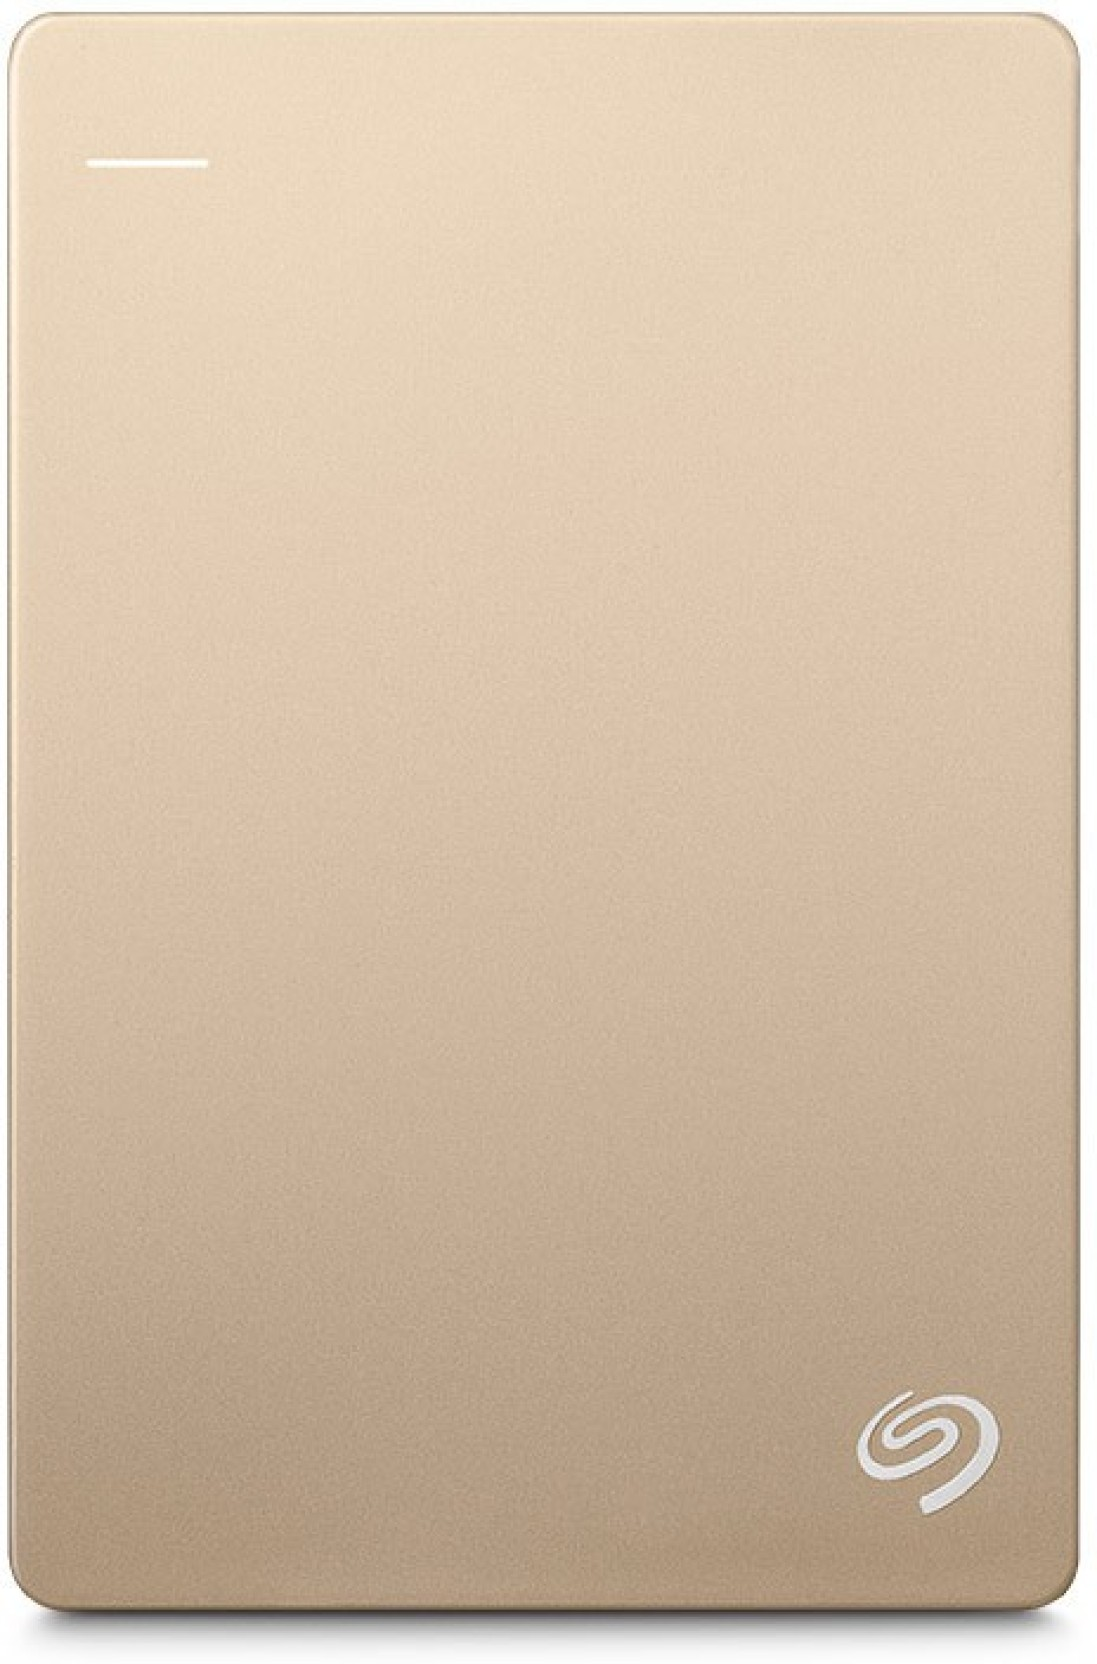 Seagate 2 TB Wired External Hard Disk Drive (Gold) at shopclues